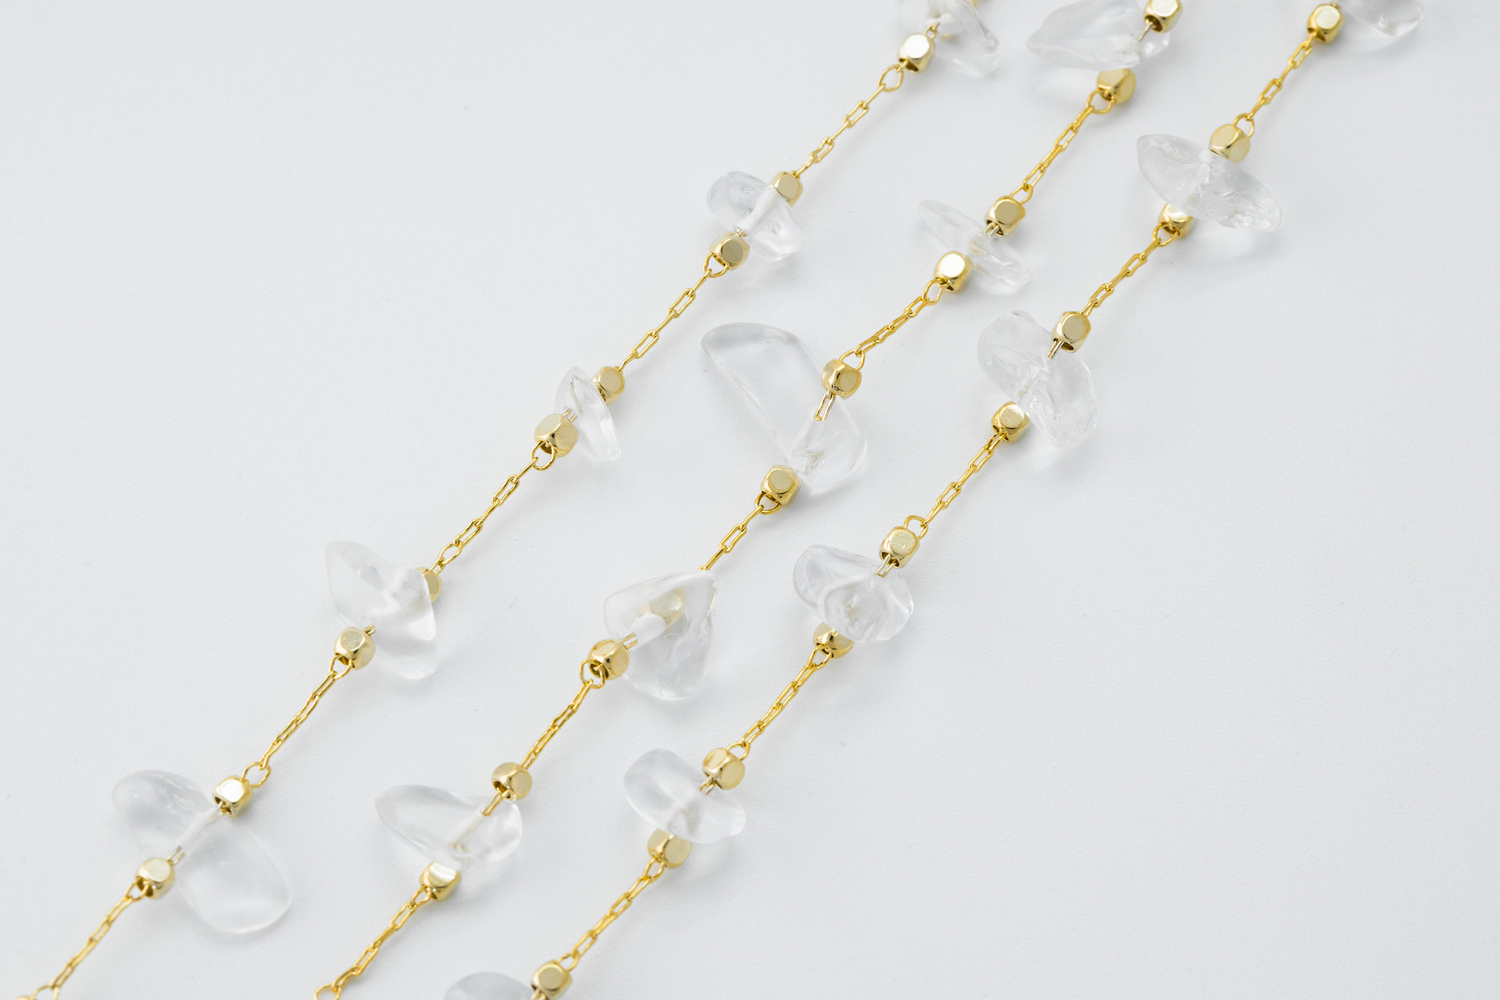 [CJ53-04] Rock crystal chain, Brass, White crystal, Nickel free, Beads chain, Dainty chain, Beaded chain, Necklace makings, 1m